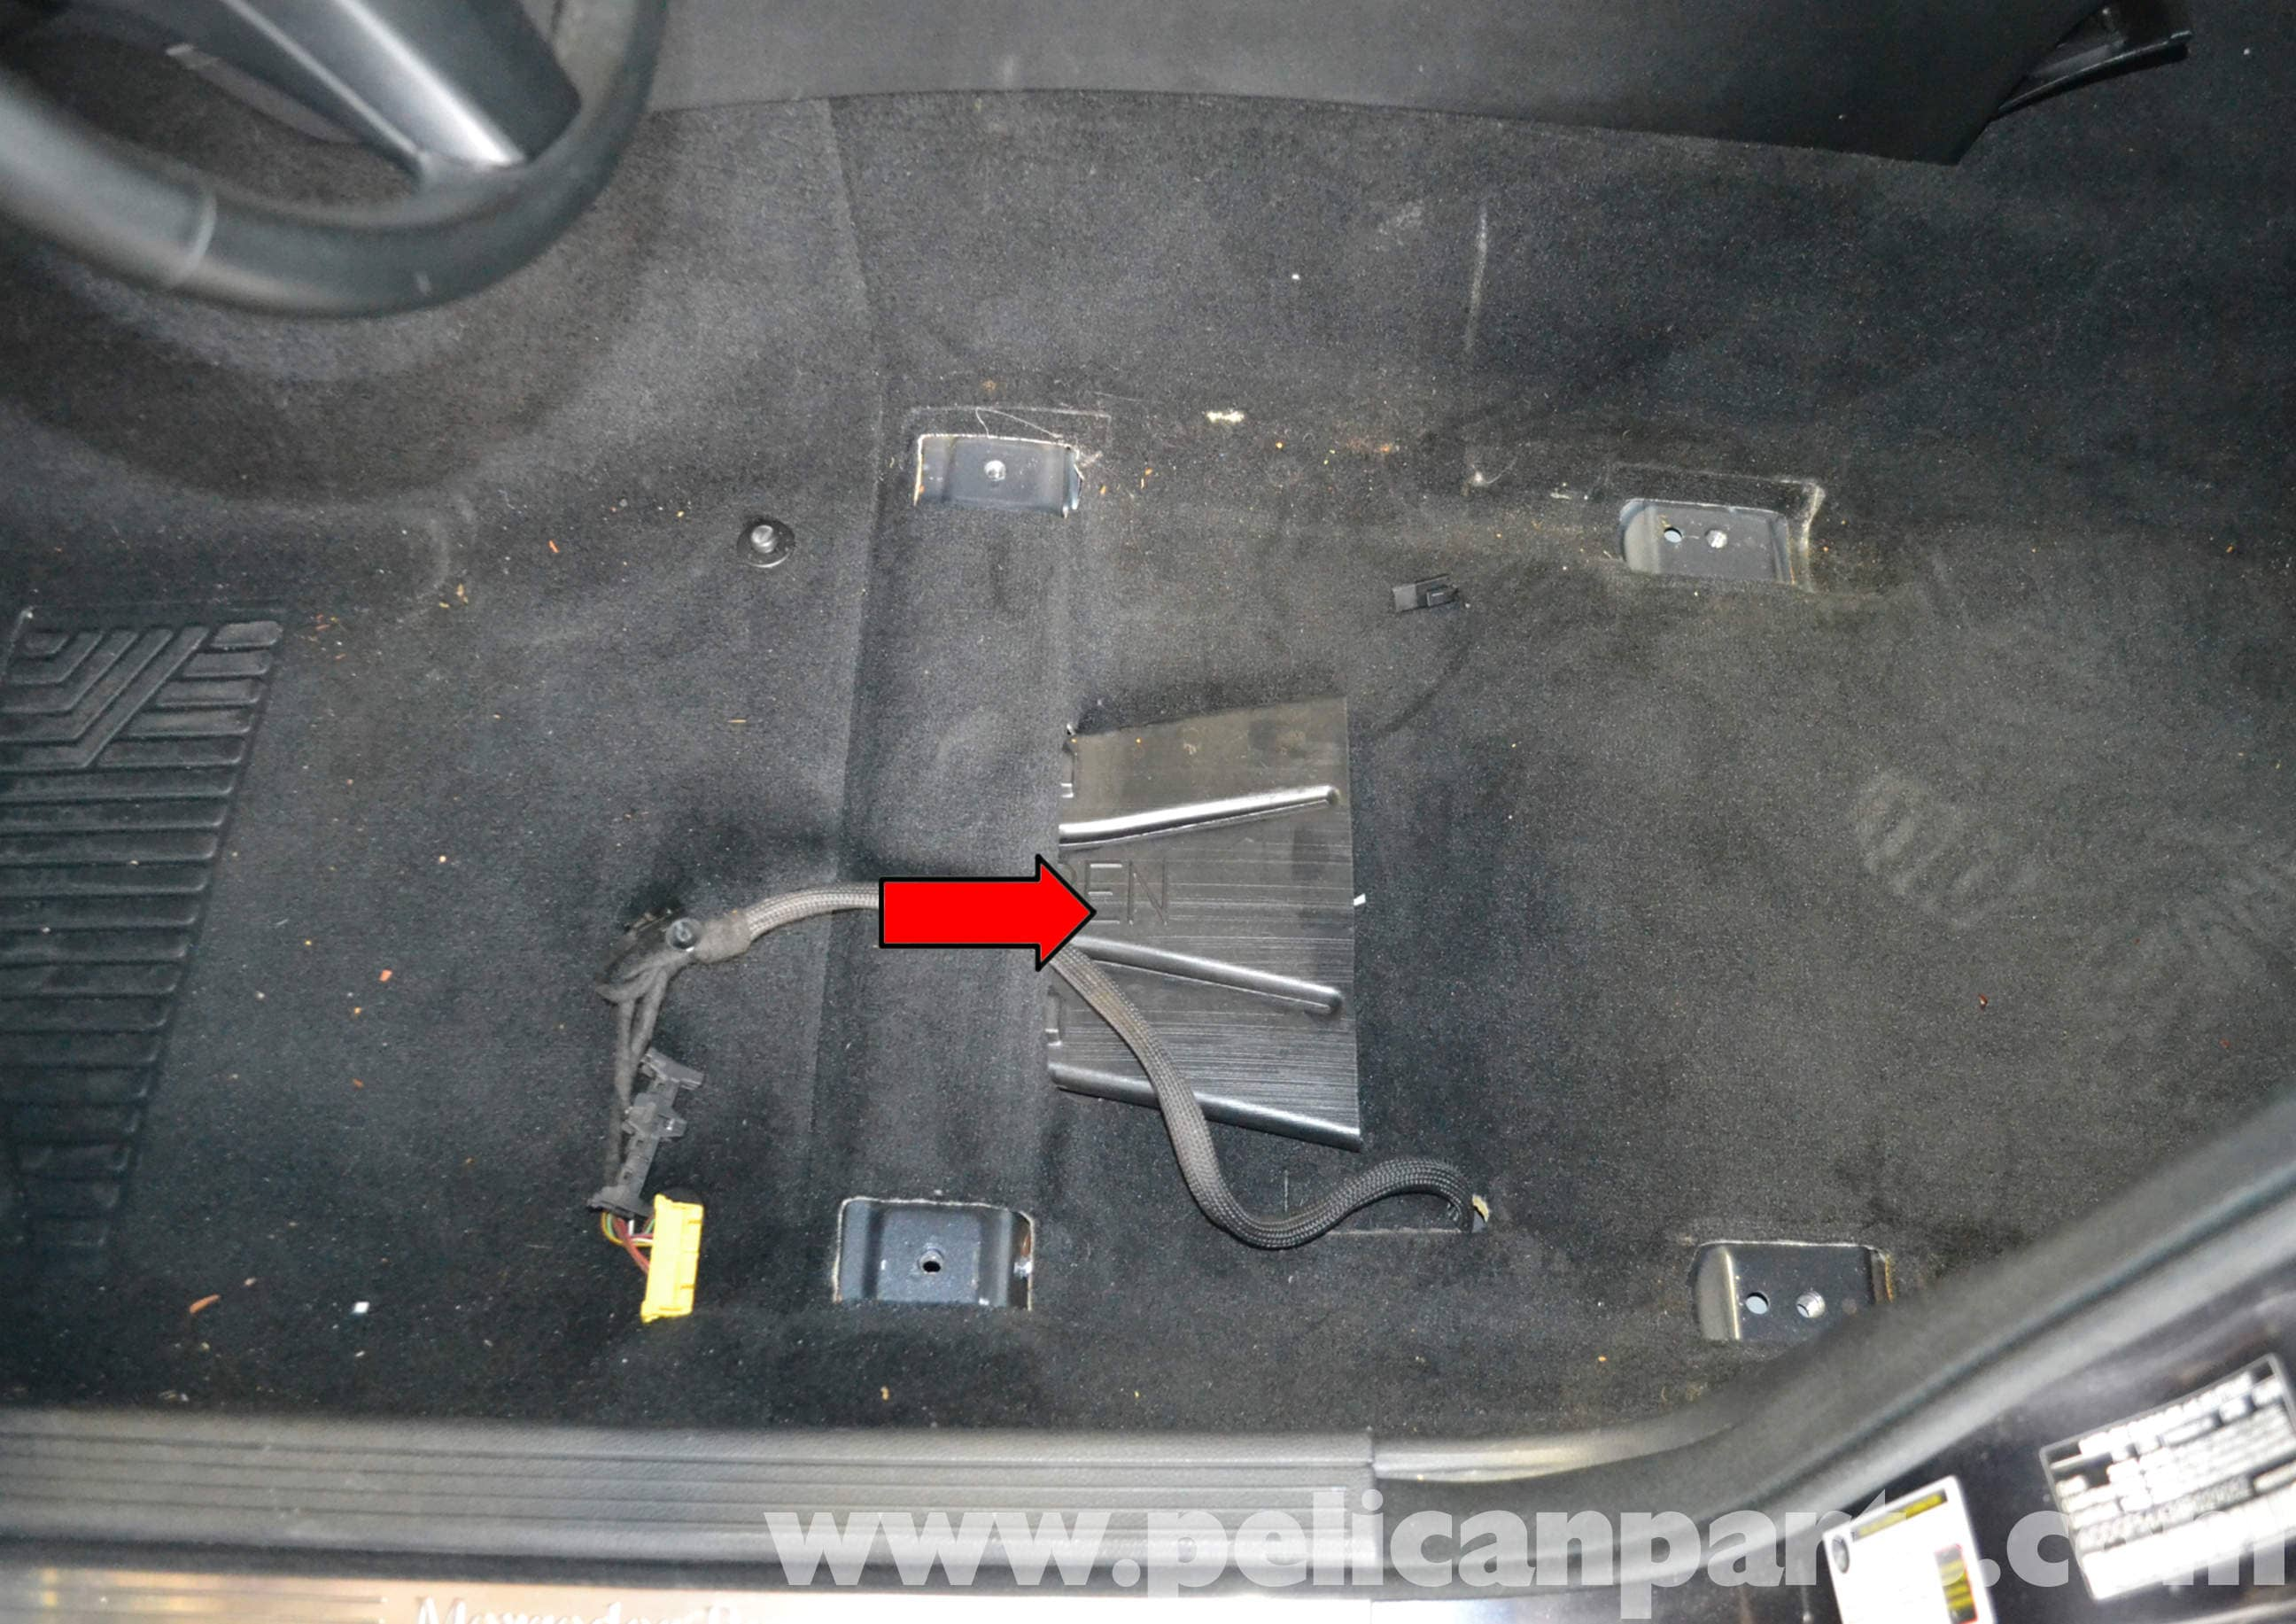 Mercedes-Benz W204 Yaw Rate Sensor Replacement - (2008-2014) C250